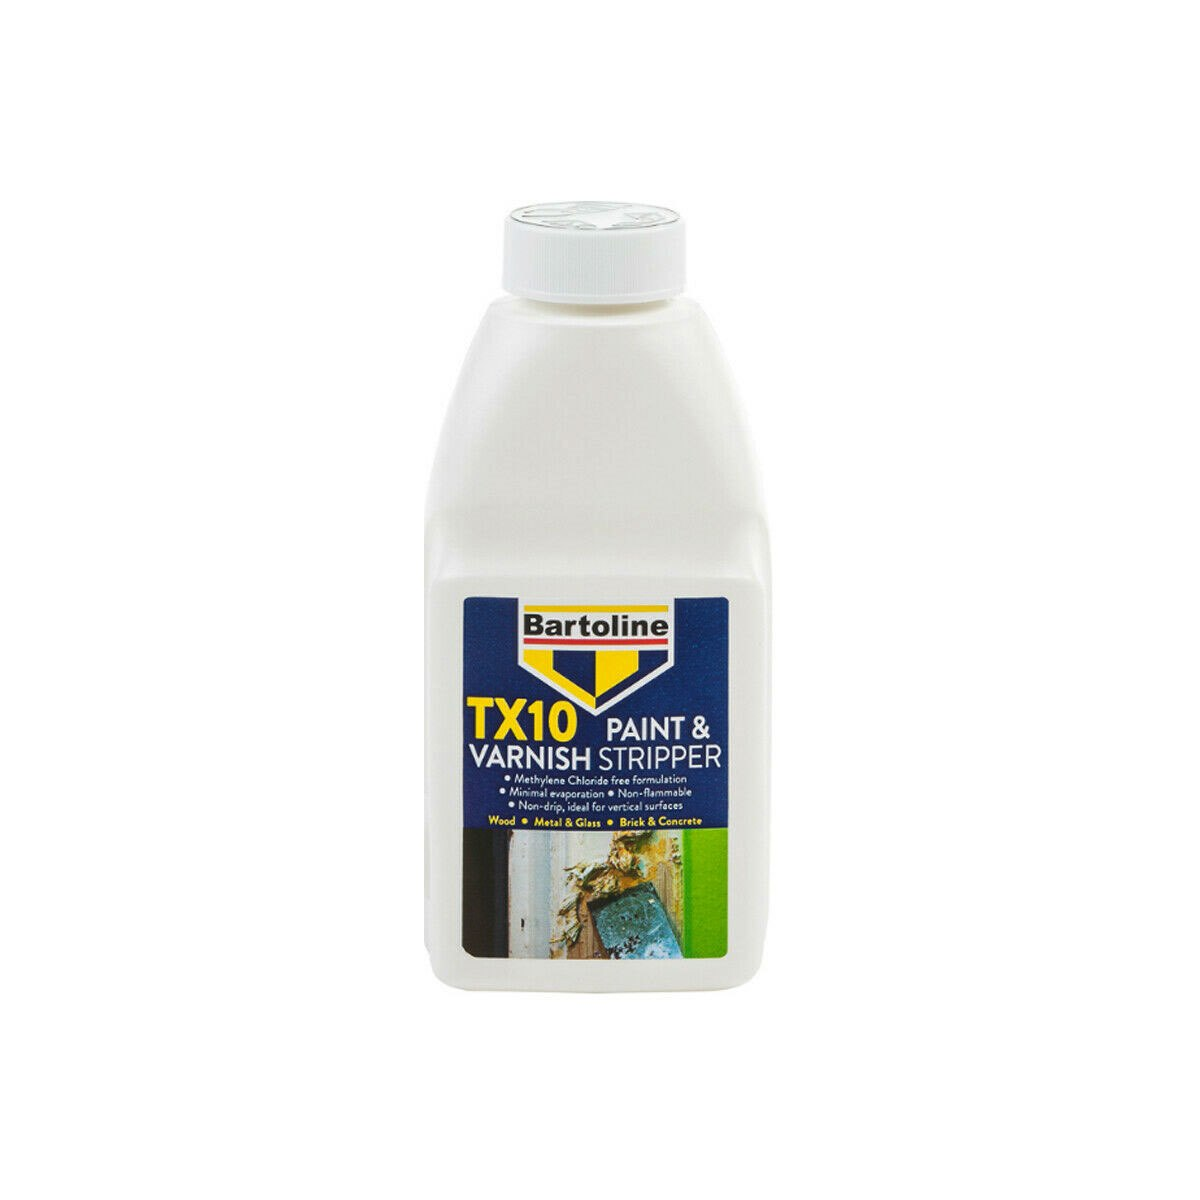 Bartoline TX10 Paint and Varnish Stripper 500ml